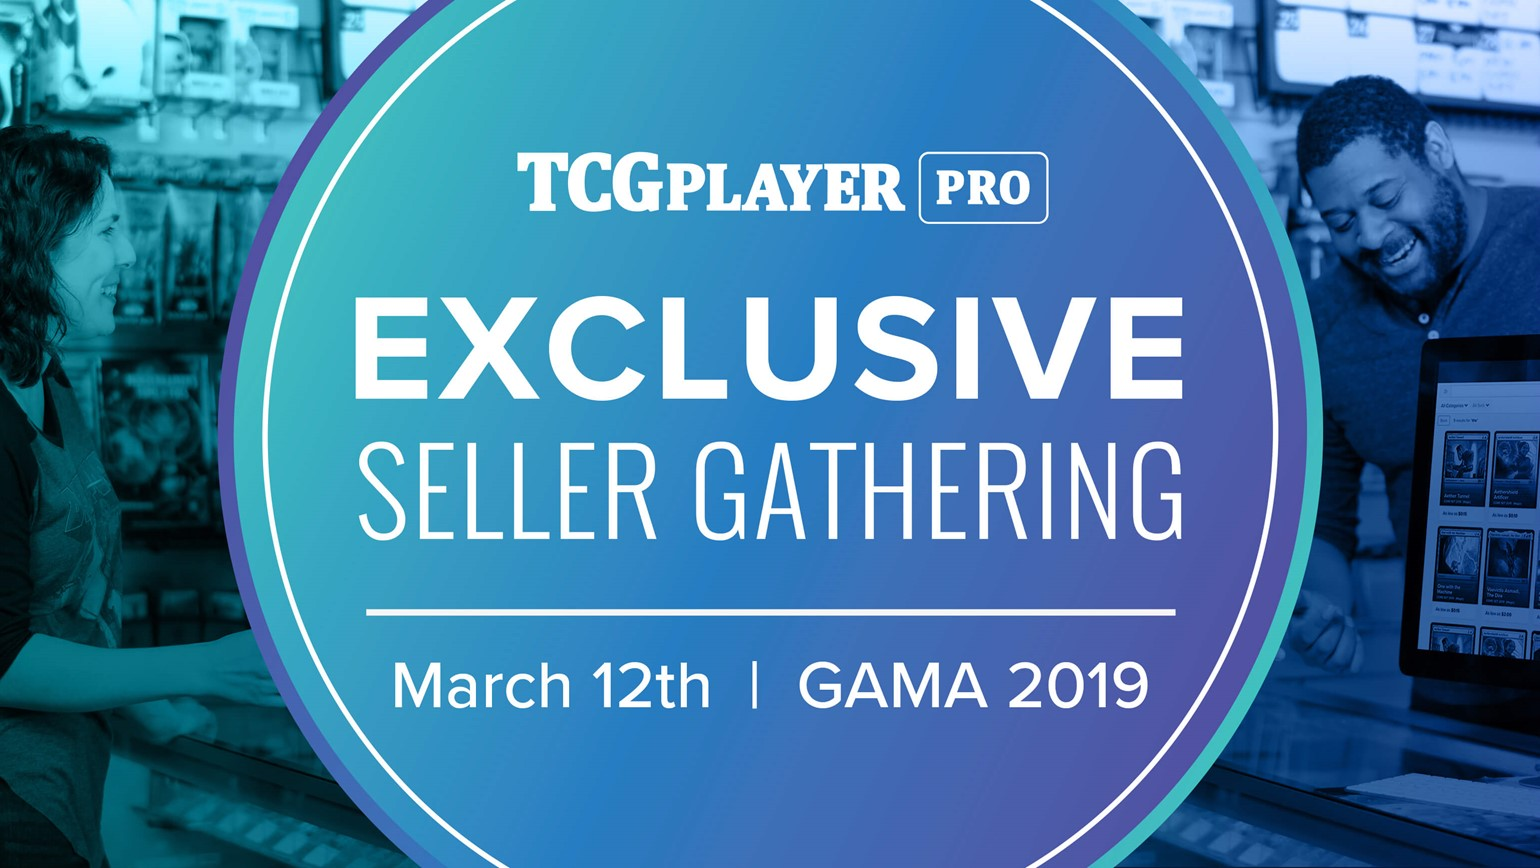 Join TCGplayer at GAMA 2019 in Reno